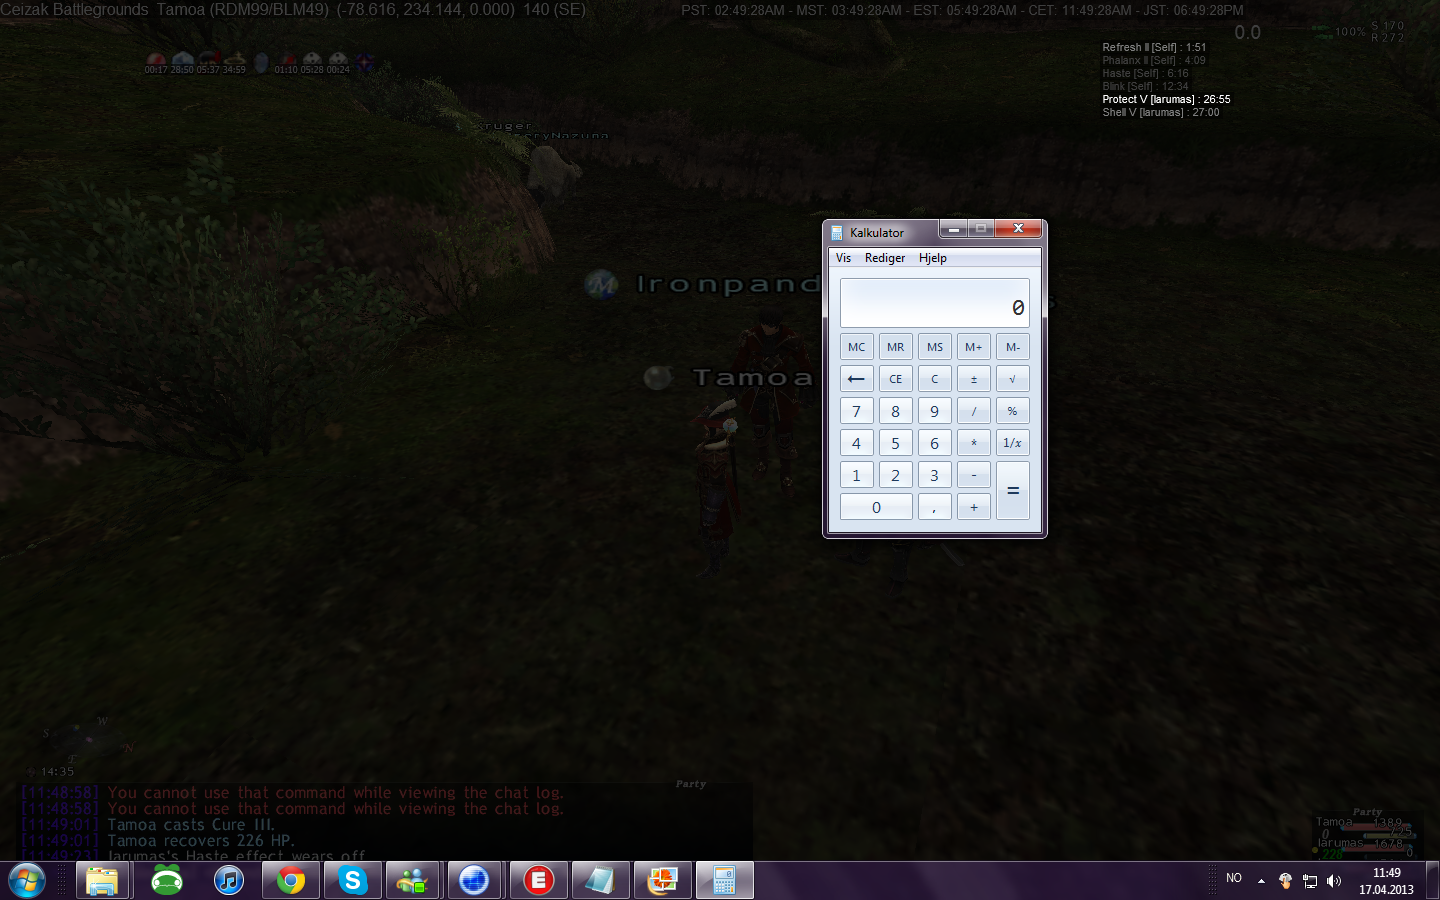 mairja ffxi this timers information libra plugin possible there ambuscade around with meter incorrect possibility threat played have upon access gets wouldnt only client neat since believe might thinking probably been confirmed infinite discussion from remove support timer favor altanas duration reraise windower hour know blacklist just alotted suspected thanks status either